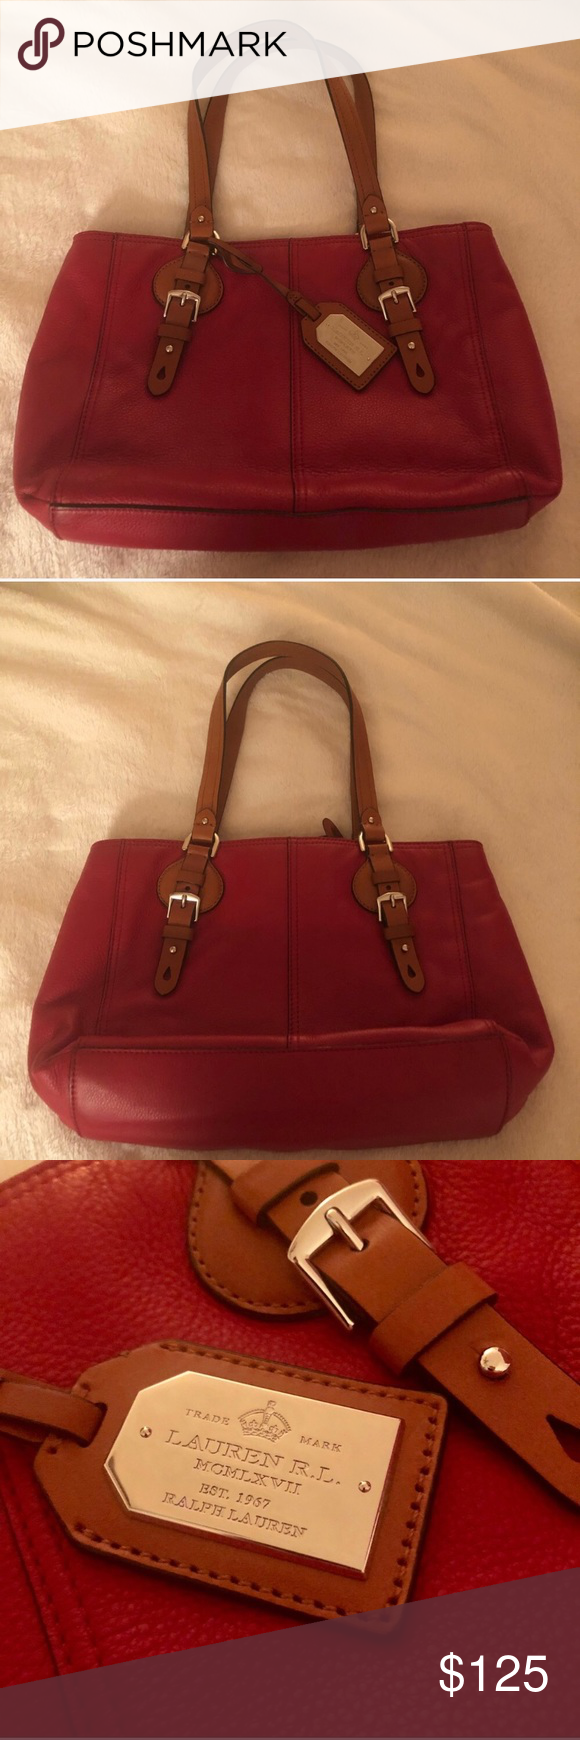 3f9e802c75 LAUREN BY RALPH LAUREN RED LEATHER SHOULDER BAG NEW WITHOUT TAGS Never Used  Lauren by Ralph